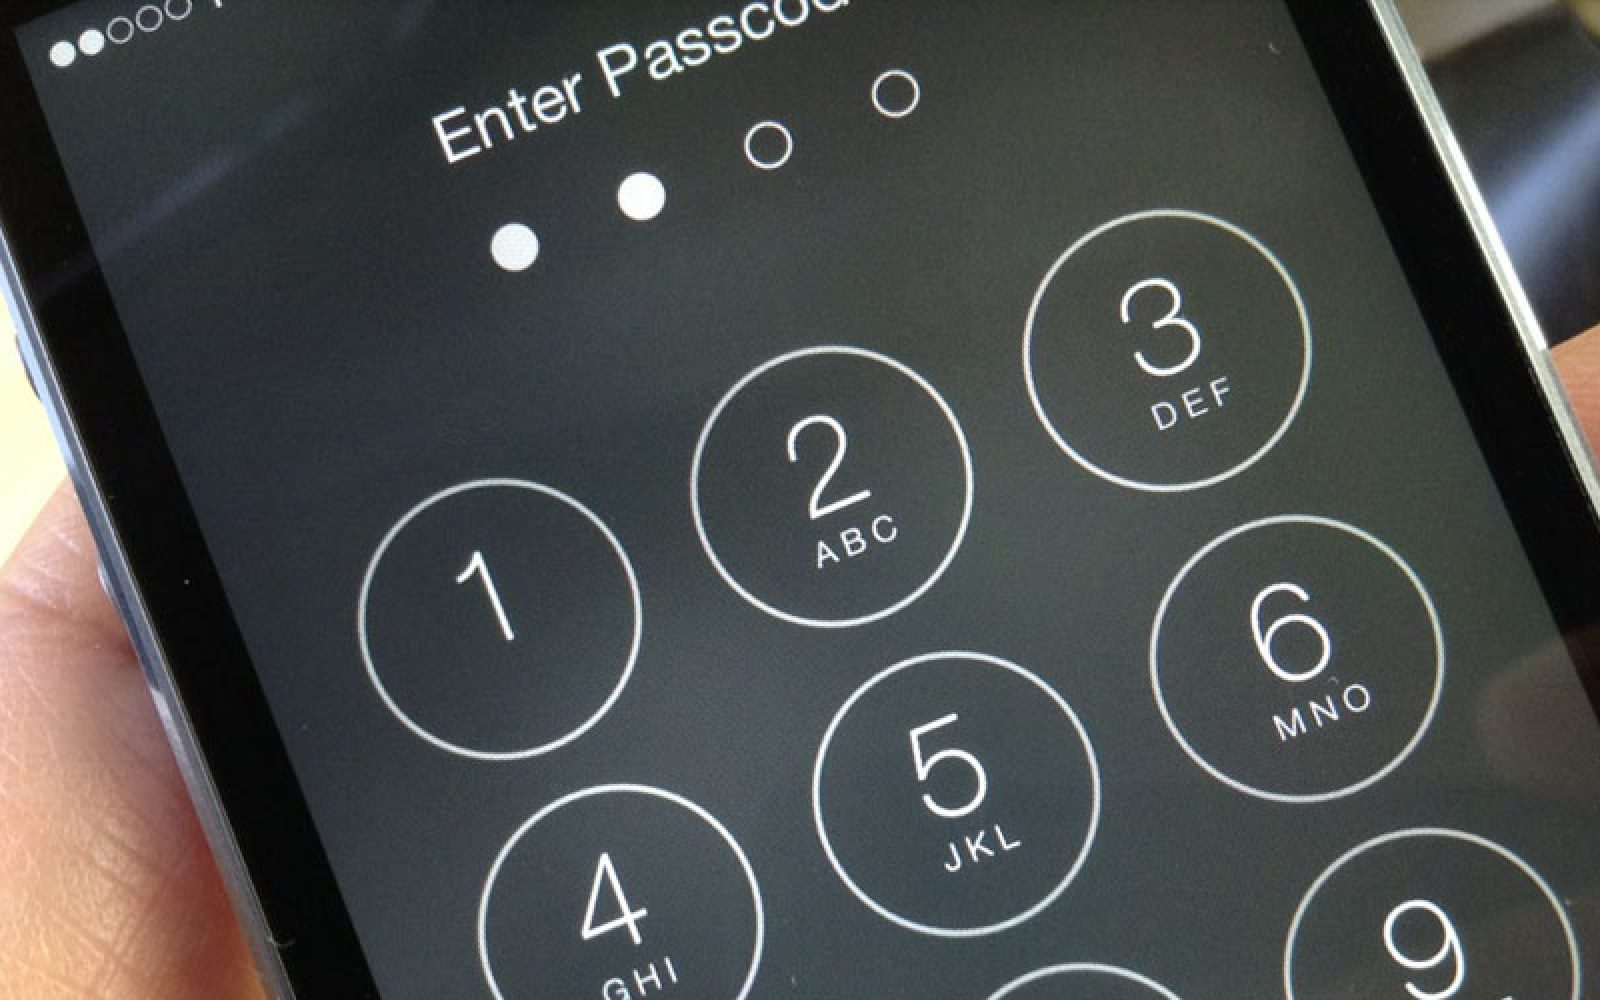 Florida court rules that suspect must supply the passcode to unlock